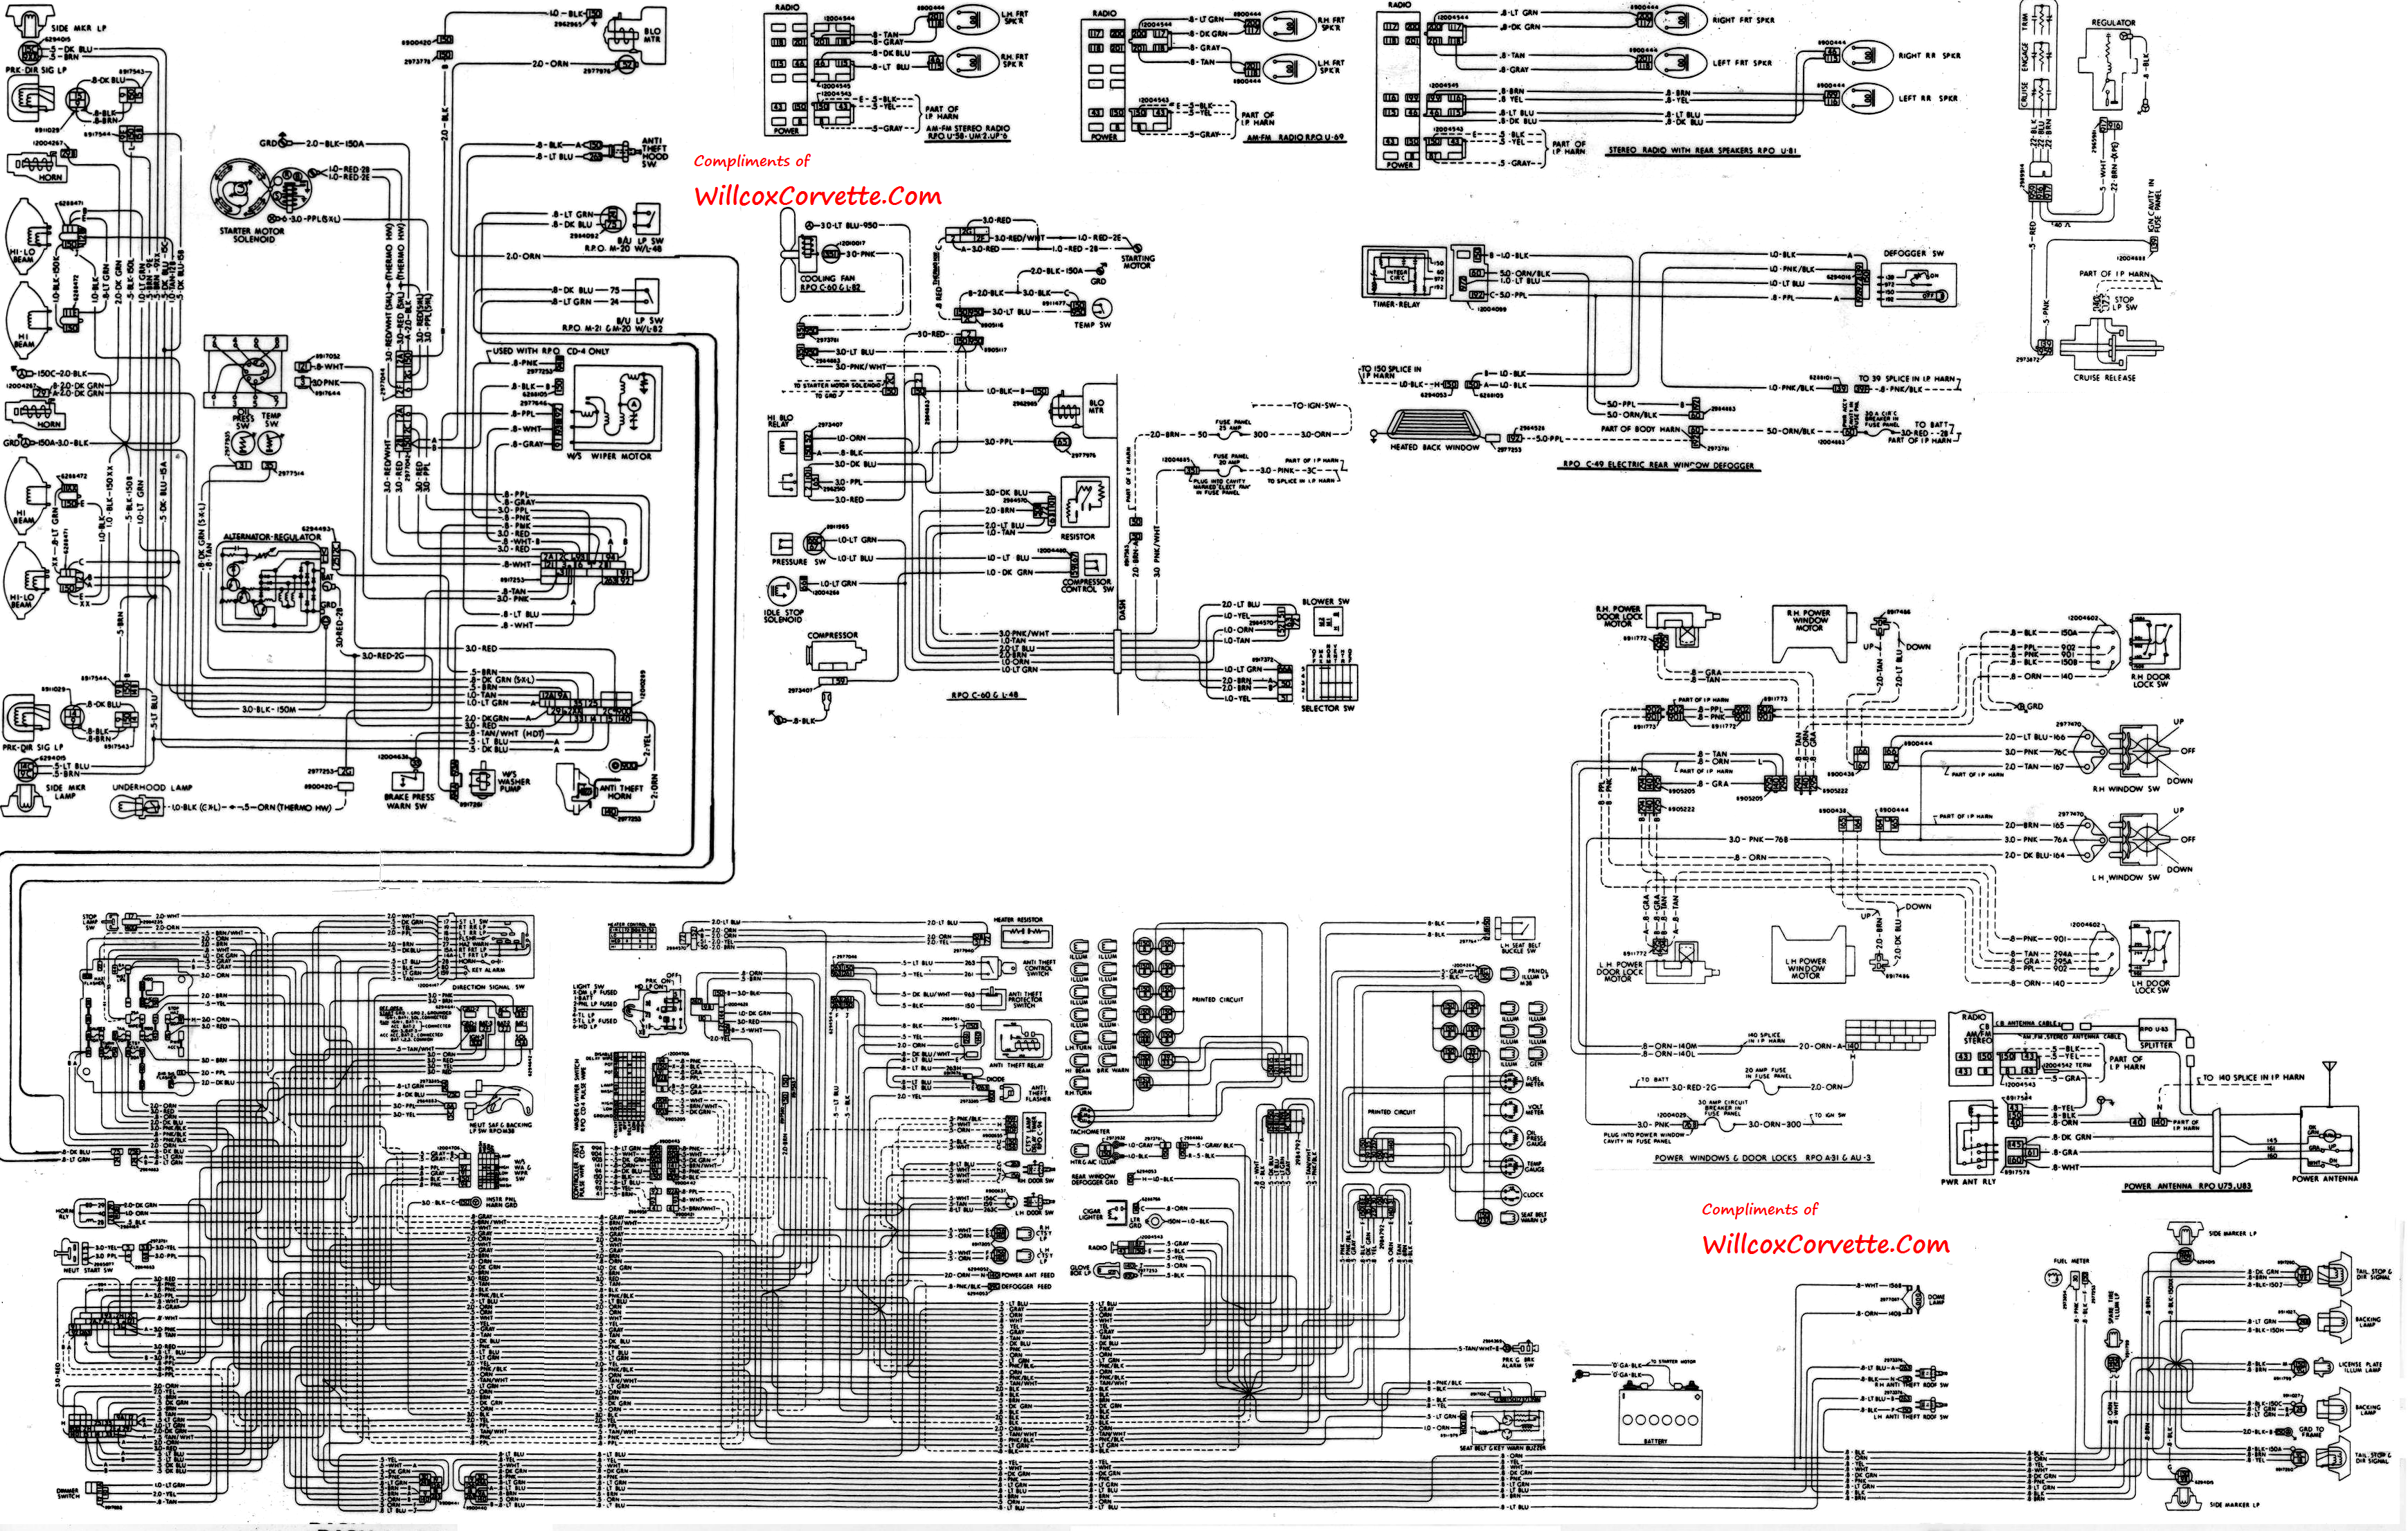 1979 corvette wiring diagram aux fan wiring diagram 1979 corvette 1966 Corvette Wiring Diagram 1991 corvette wiring diagram schematic